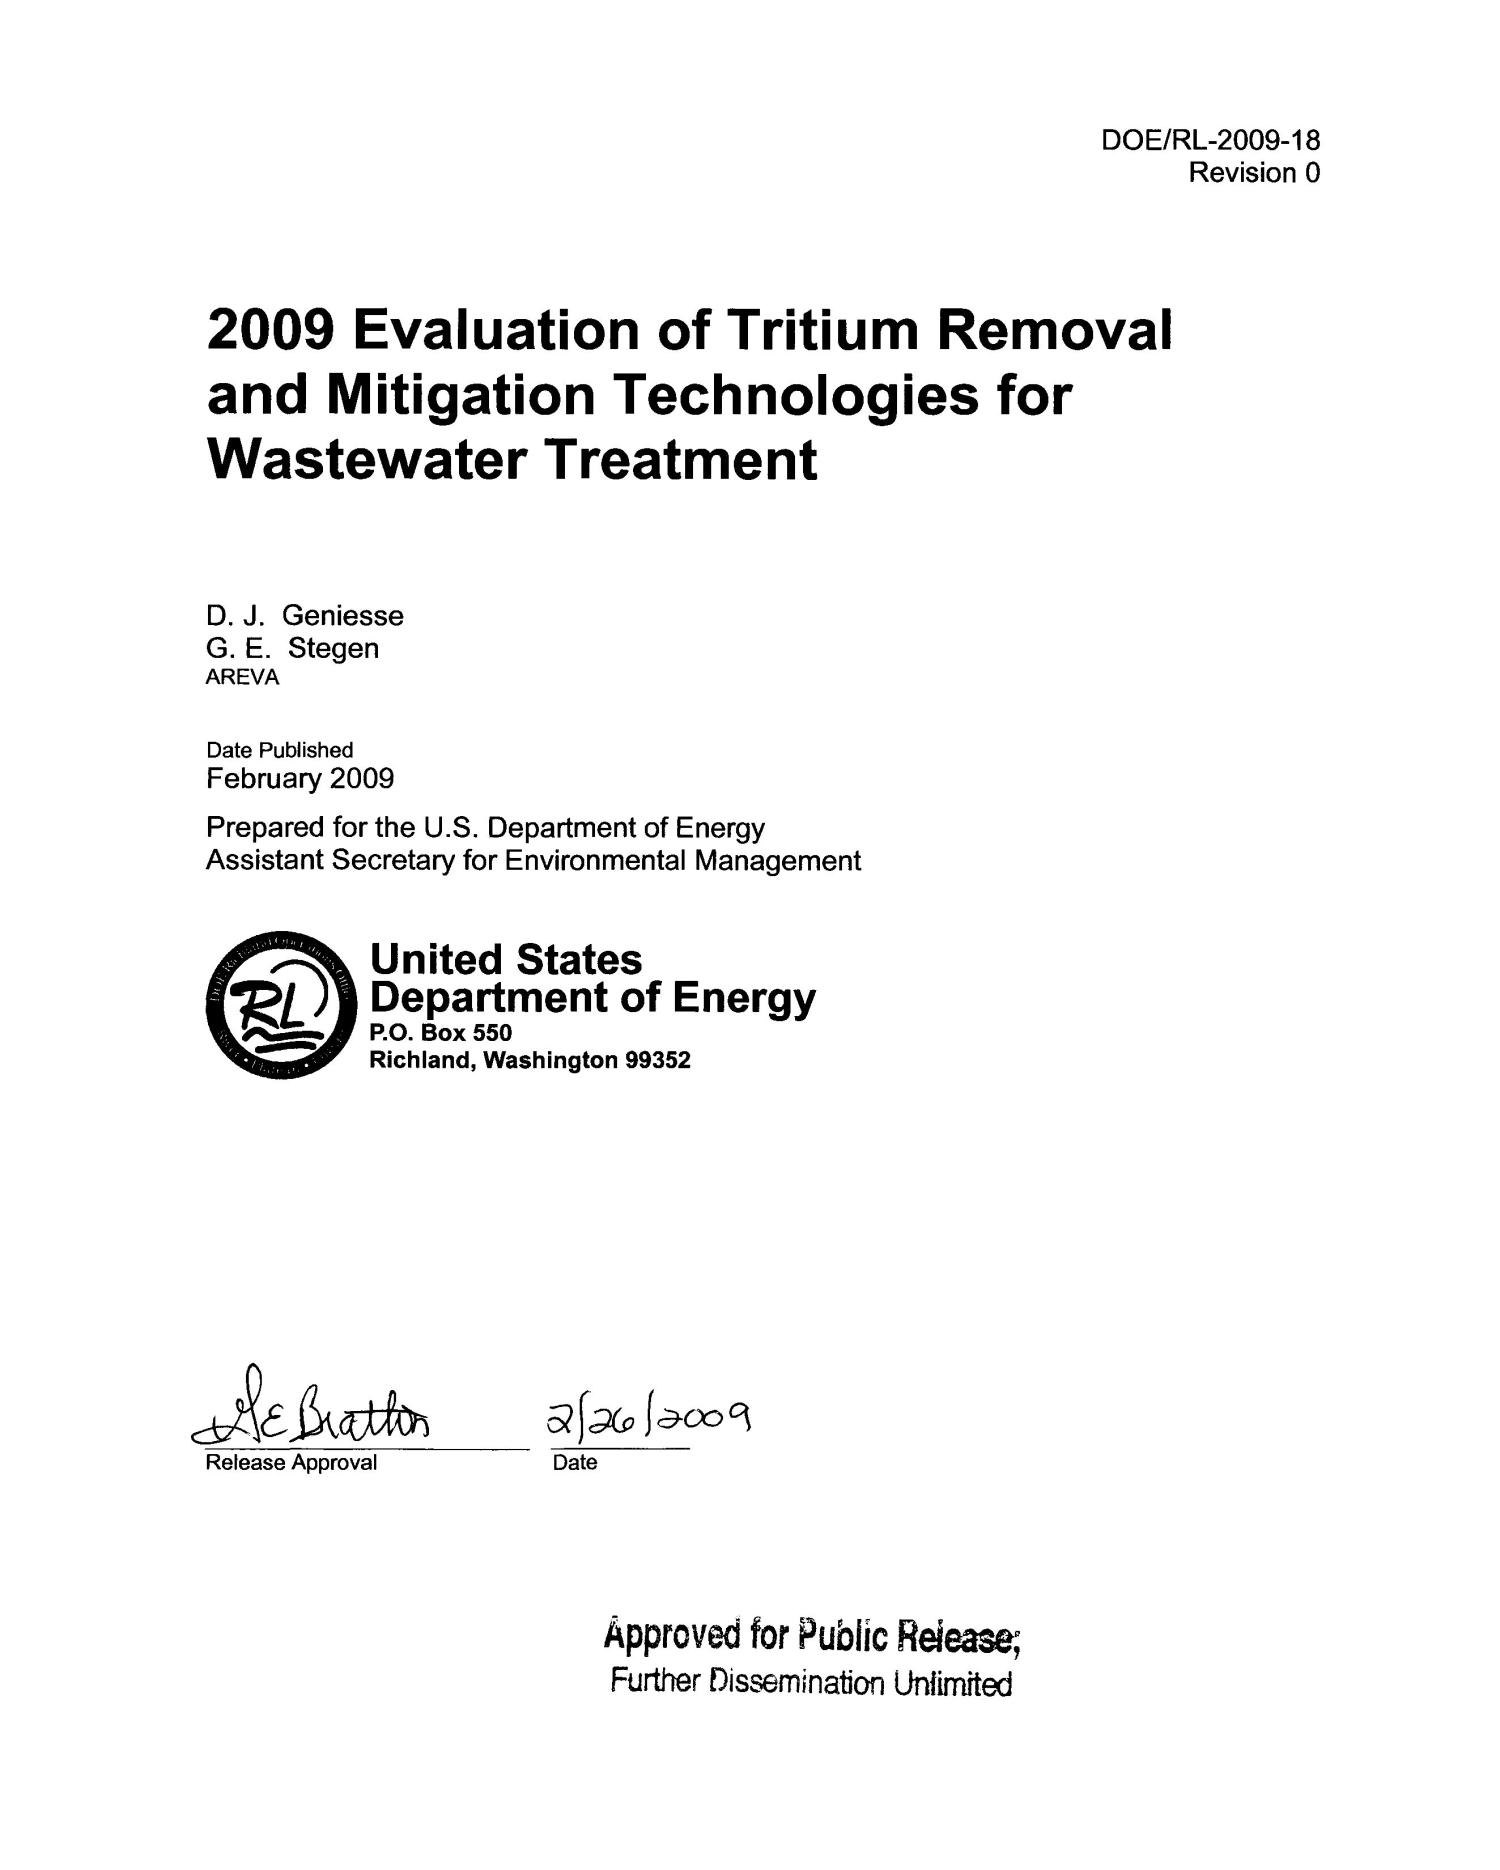 2009 EVALUATION OF TRITIUM REMOVAL AND MITIGATION TECHNOLOGIES FOR WASTEWATER TREATMENT                                                                                                      [Sequence #]: 2 of 51